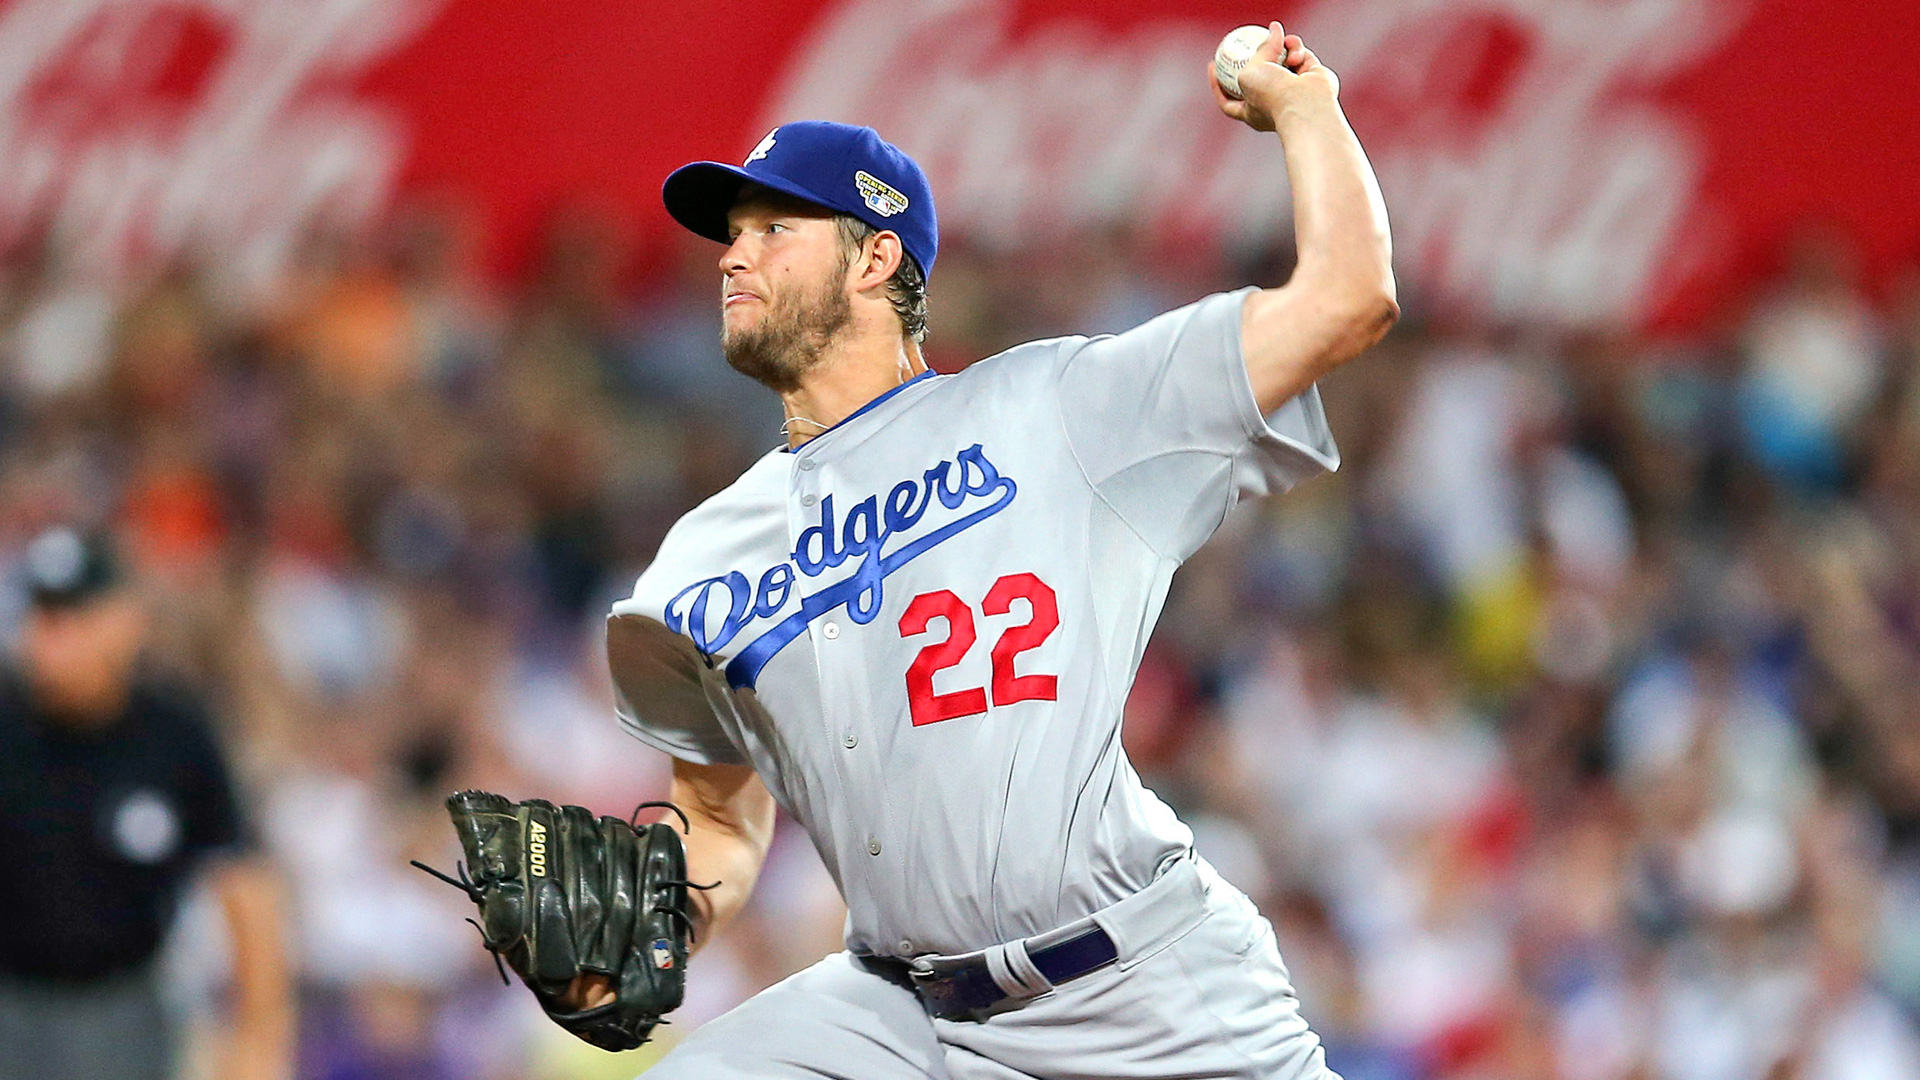 Injury Report: More bad news for Kershaw, fantasy baseball owners